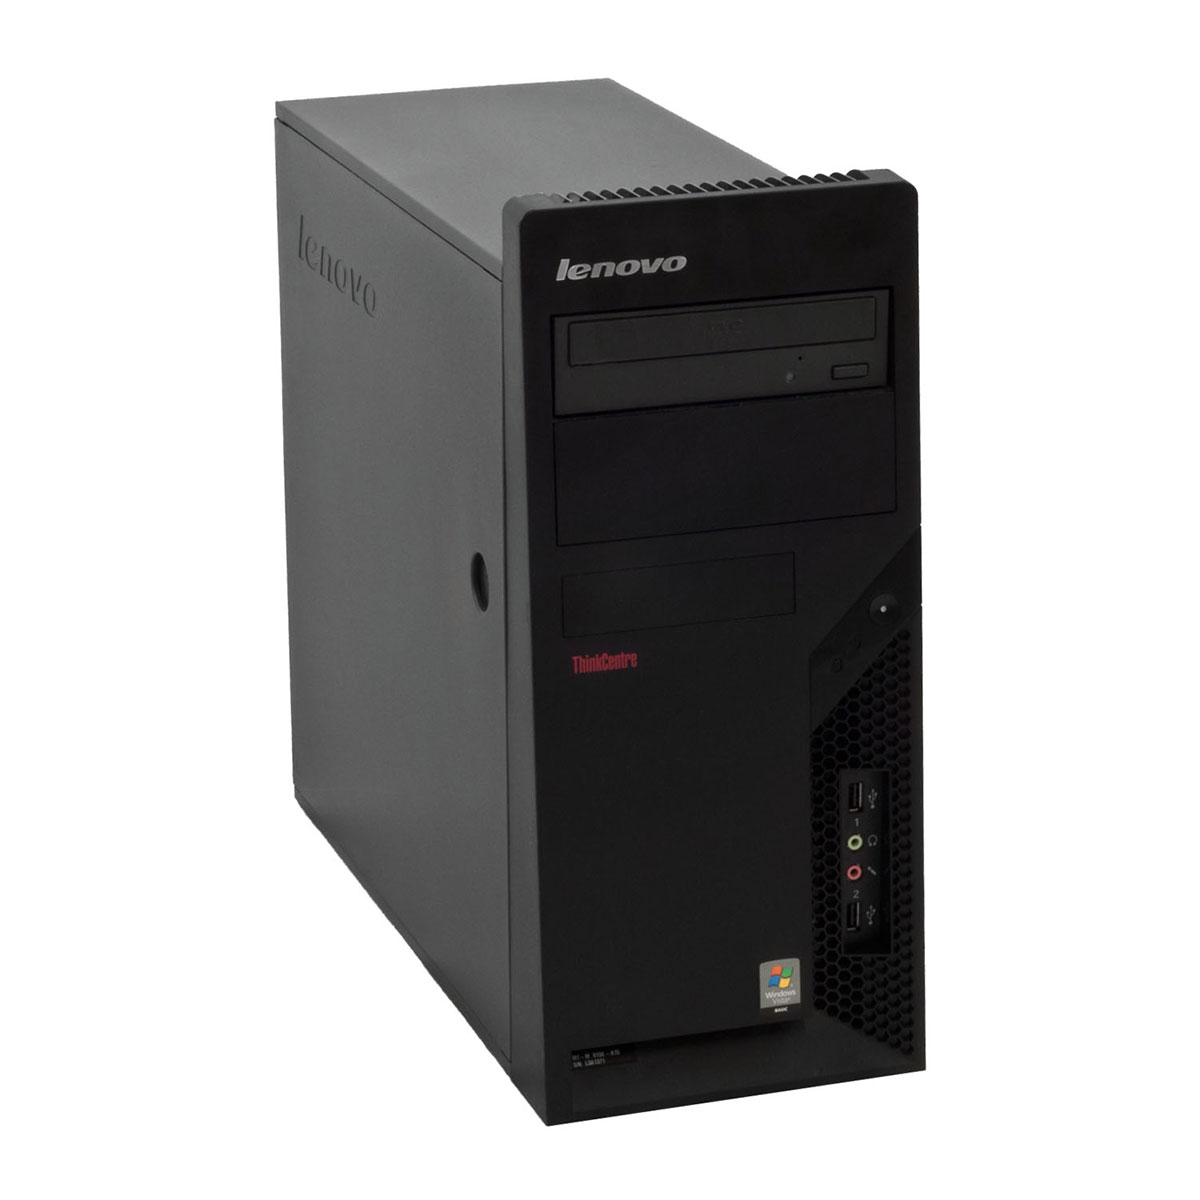 Lenovo Thinkcentre M58e Intel C2d E8400 3.00 Ghz 4 Gb Ddr 2 250 Gb Hdd Dvd-rom Tower